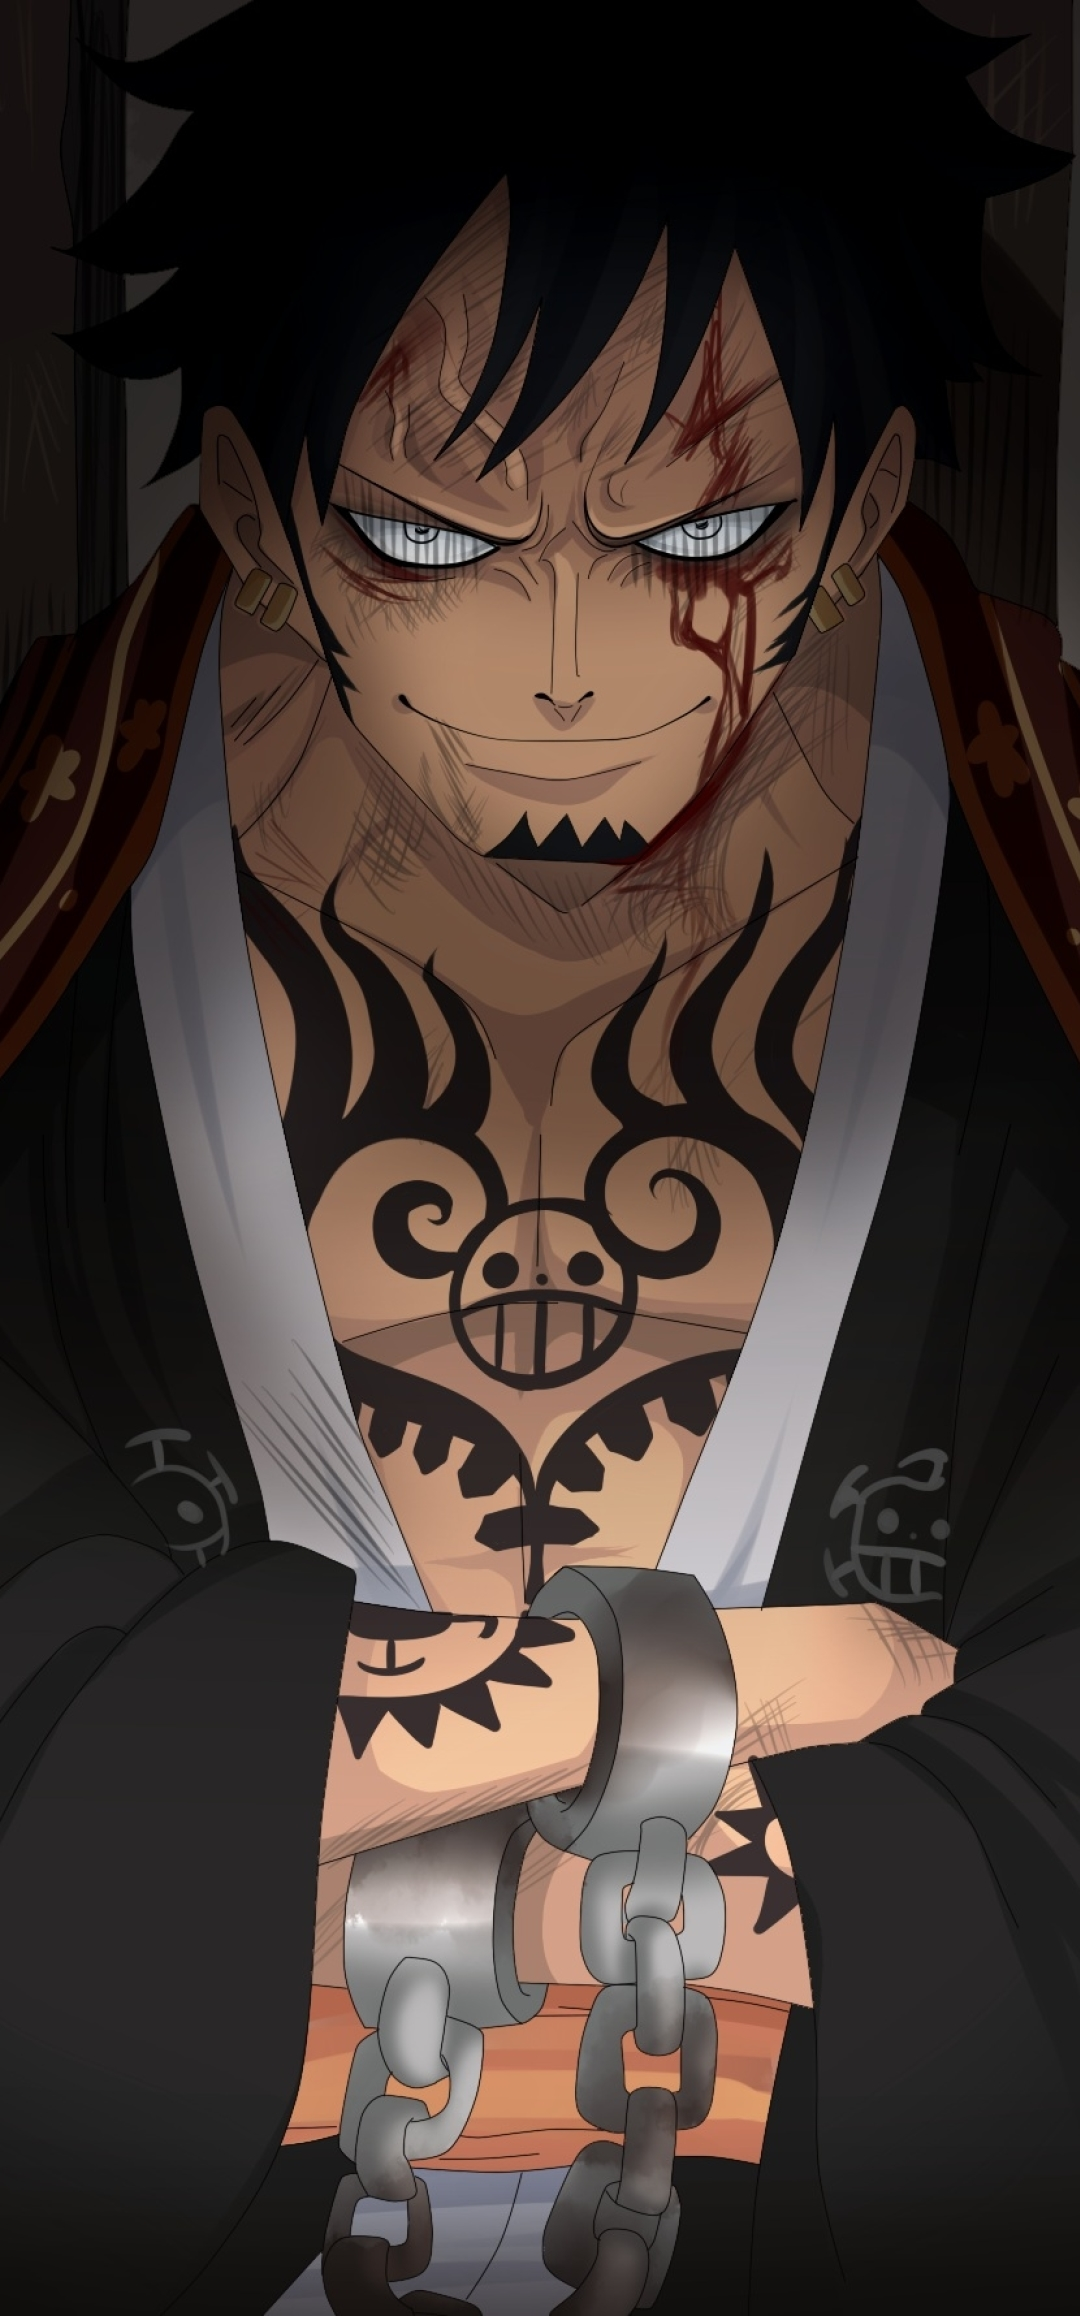 1080x2316 Trafalgar Law From One Piece 1080x2316 Resolution Wallpaper Hd Anime 4k Wallpapers Images Photos And Background Wallpapers Den